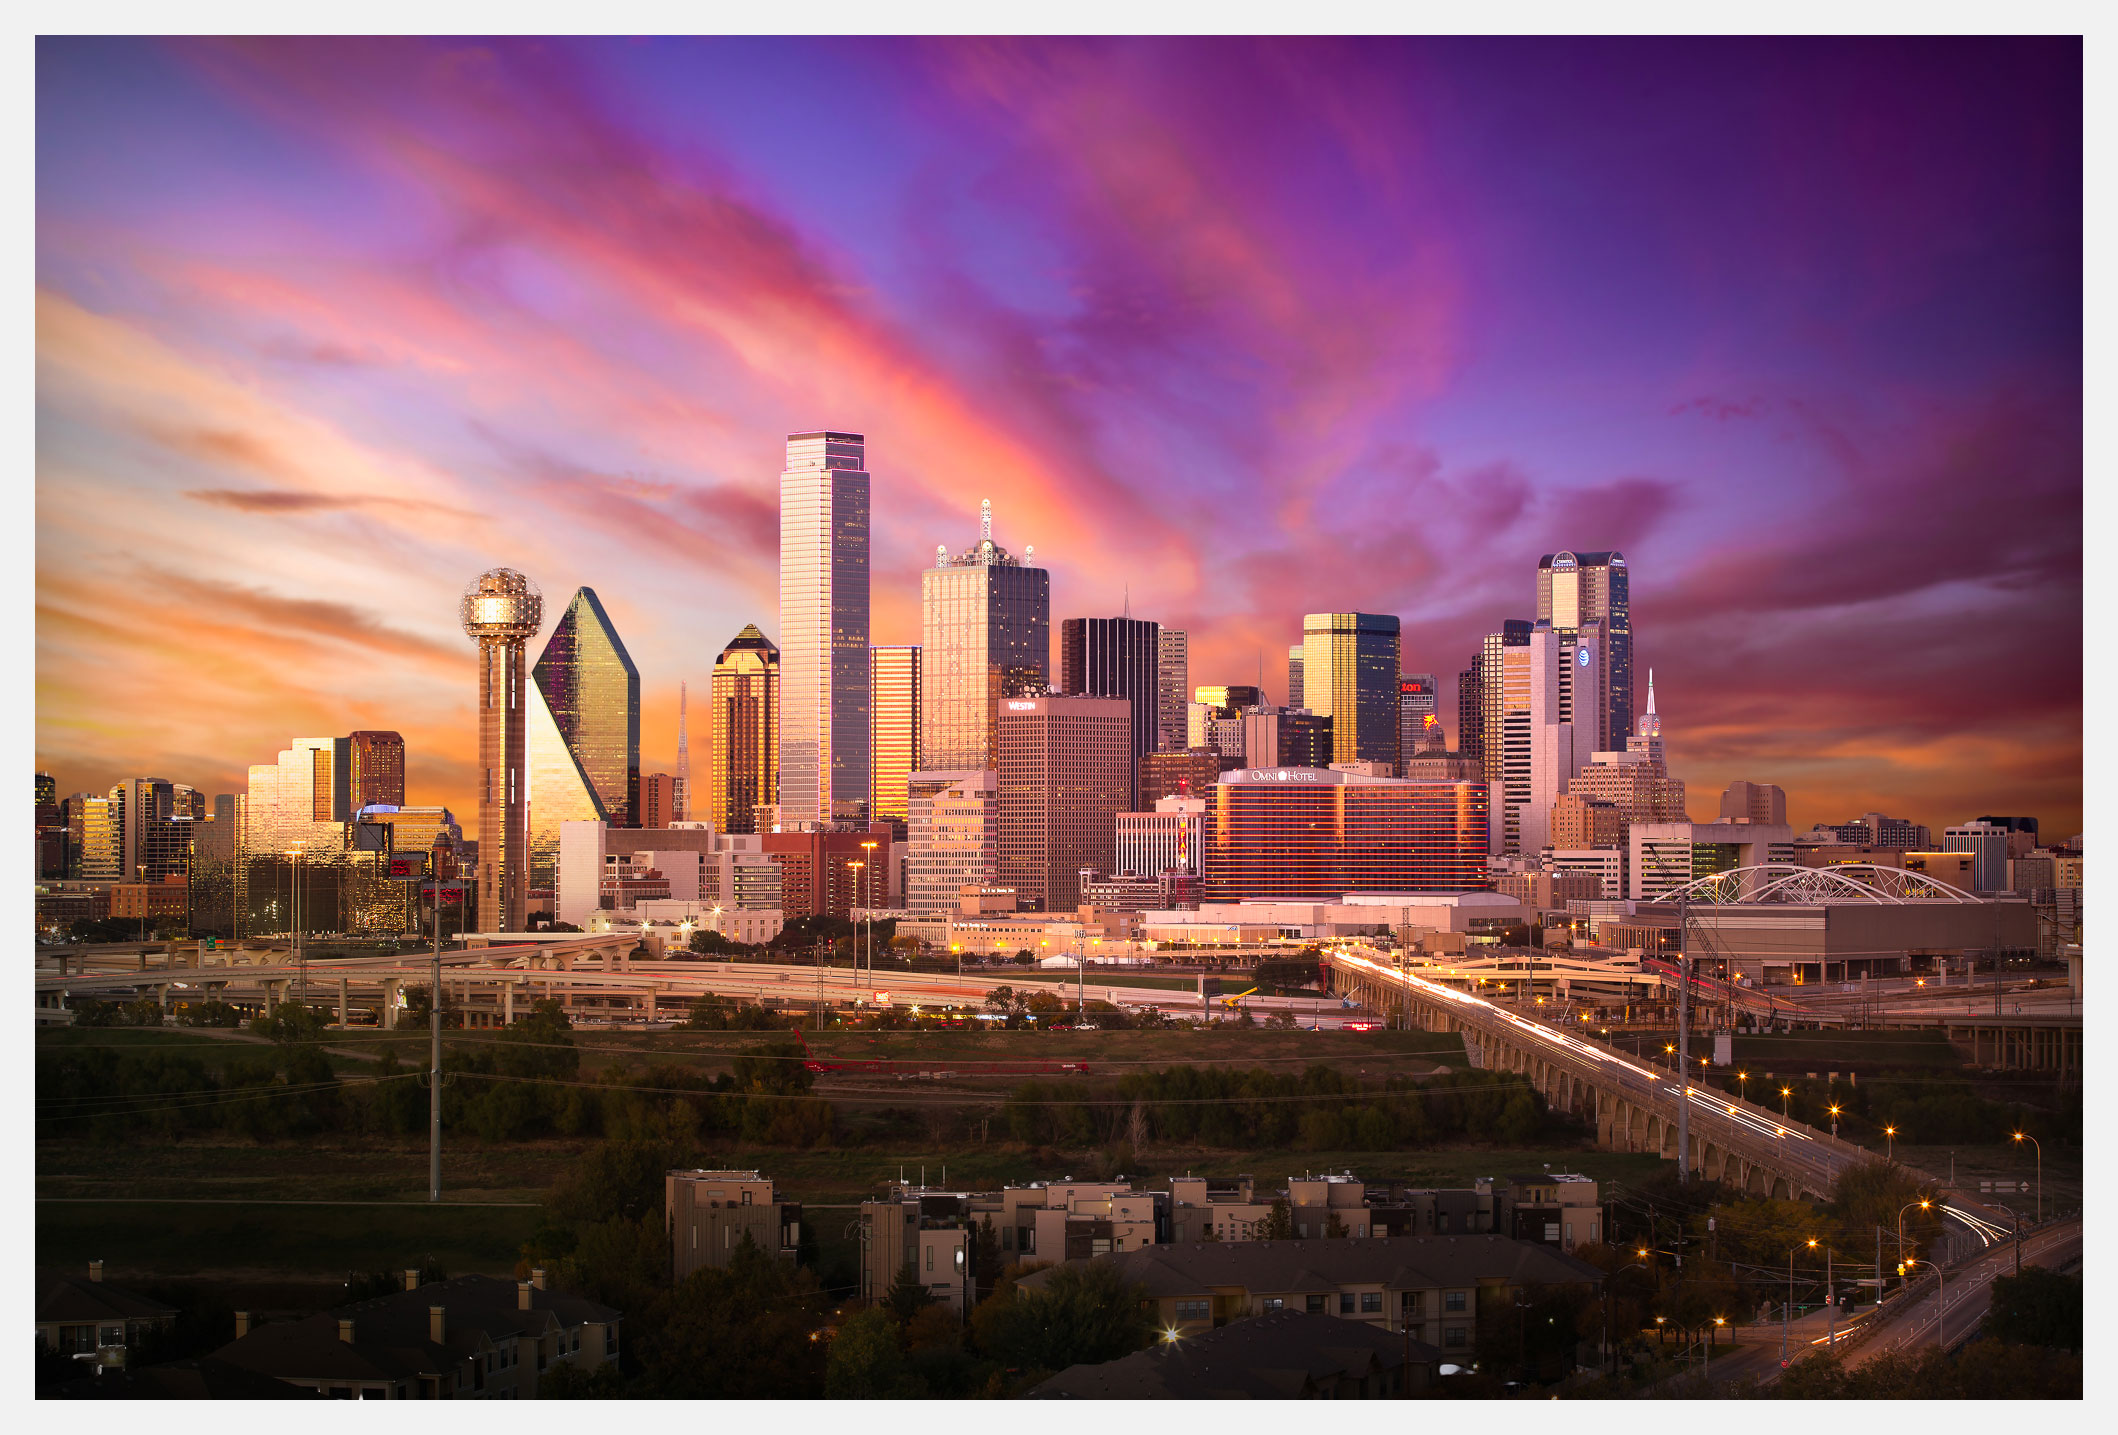 Dallas Skyline at Dusk with Autumn Sunset